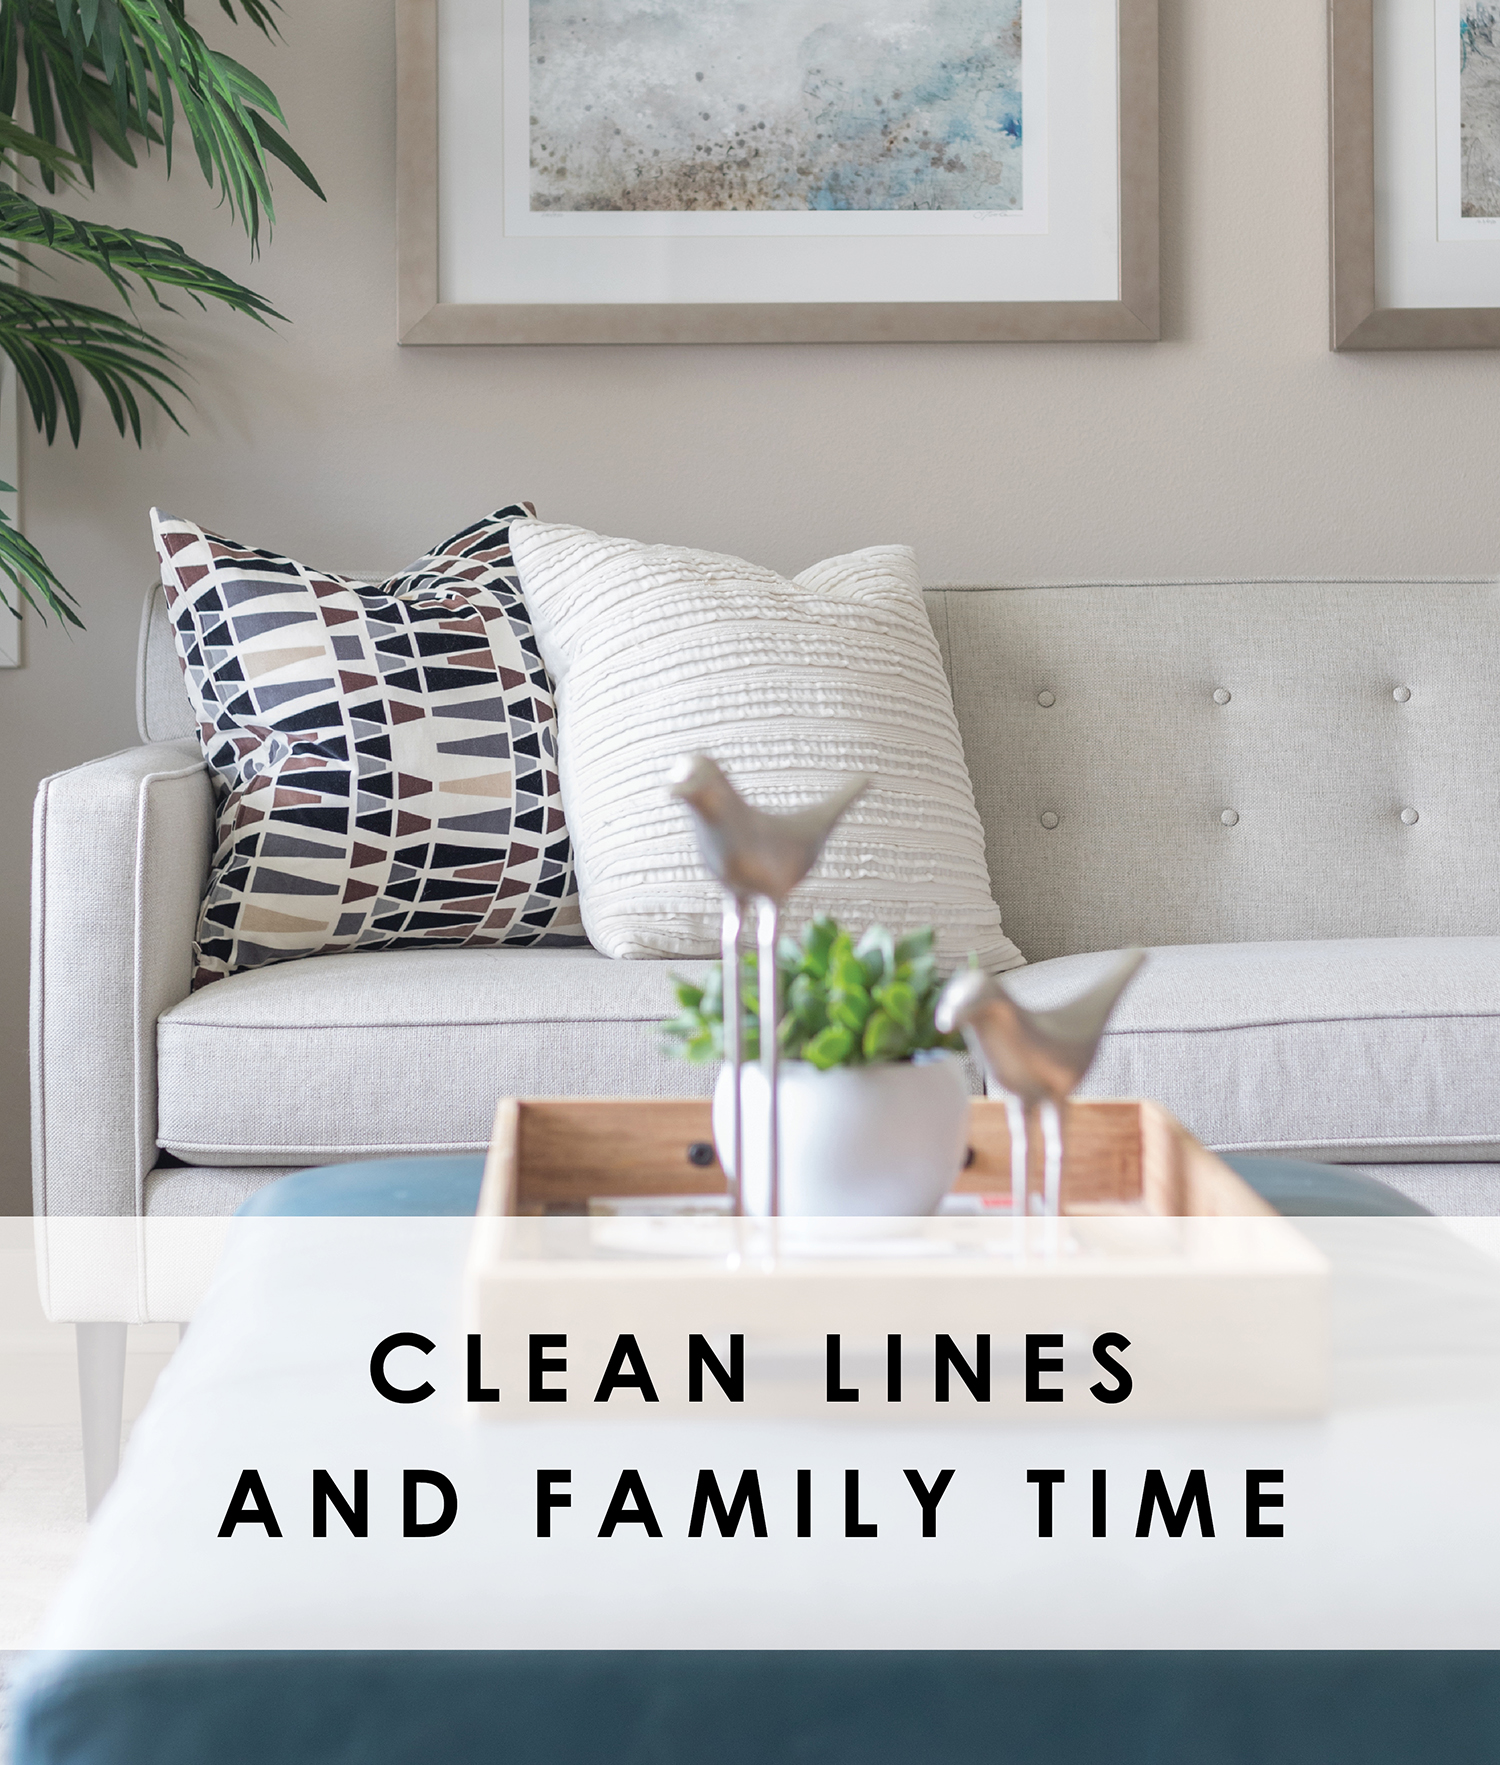 Clean Lines and Family Time.jpg